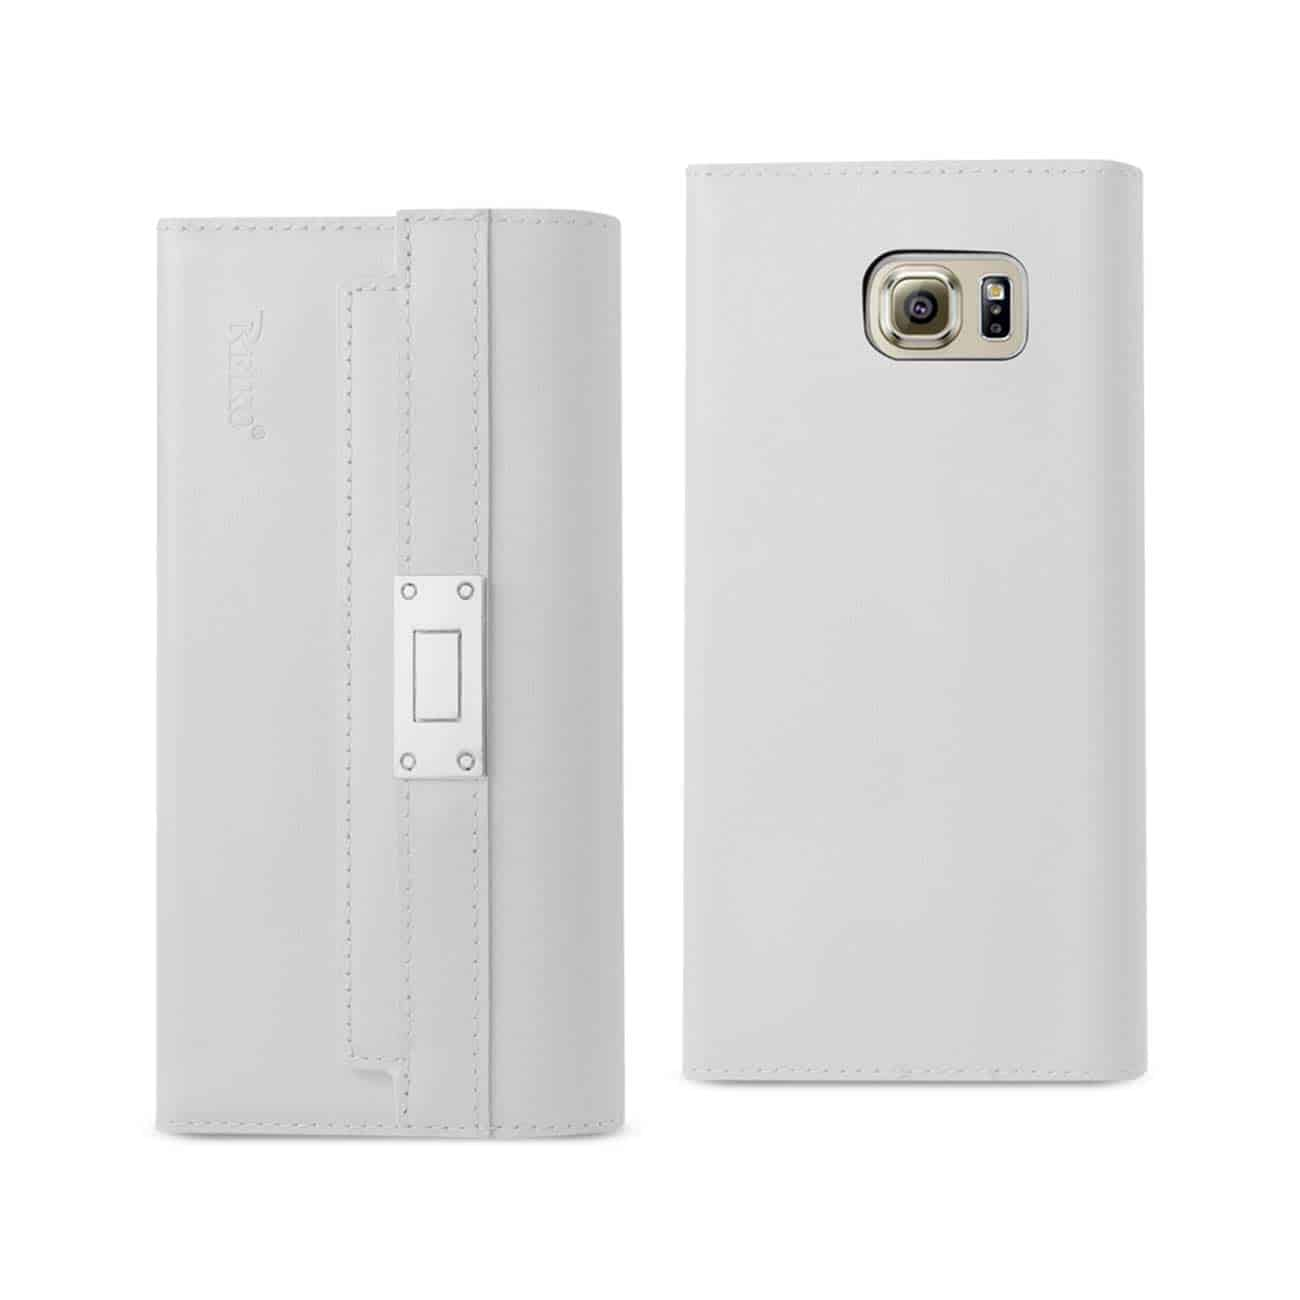 SAMSUNG GALAXY S6 GENUINE LEATHER RFID WALLET CASE AND METAL BUCKLE BELT IN IVORY